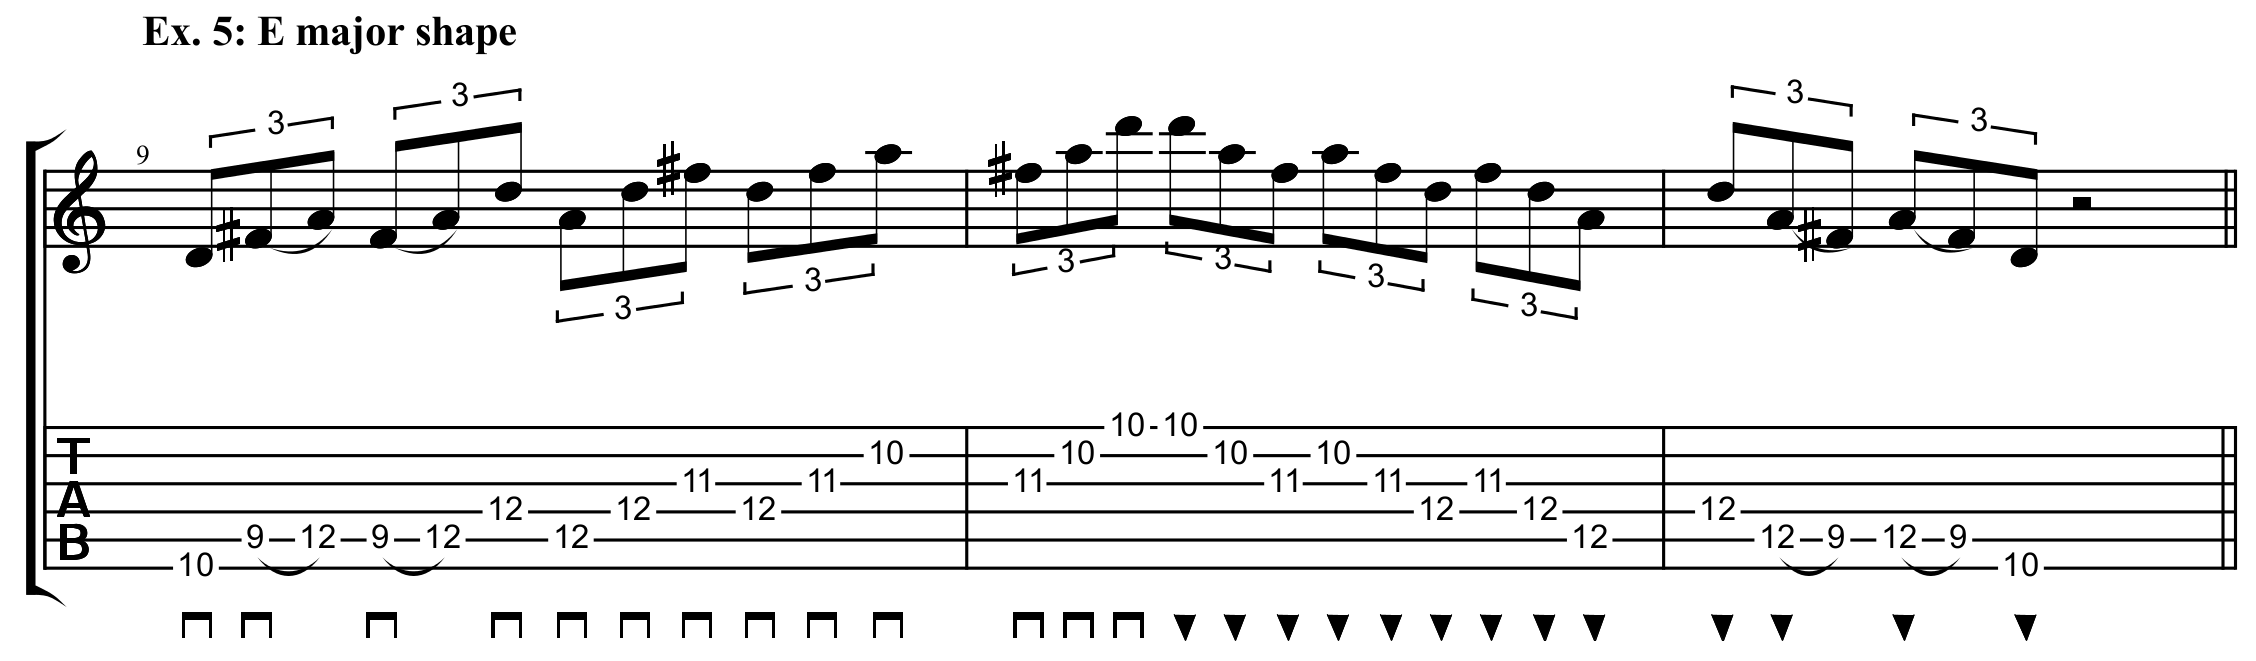 E major sweep arpeggio shape done in an exercise